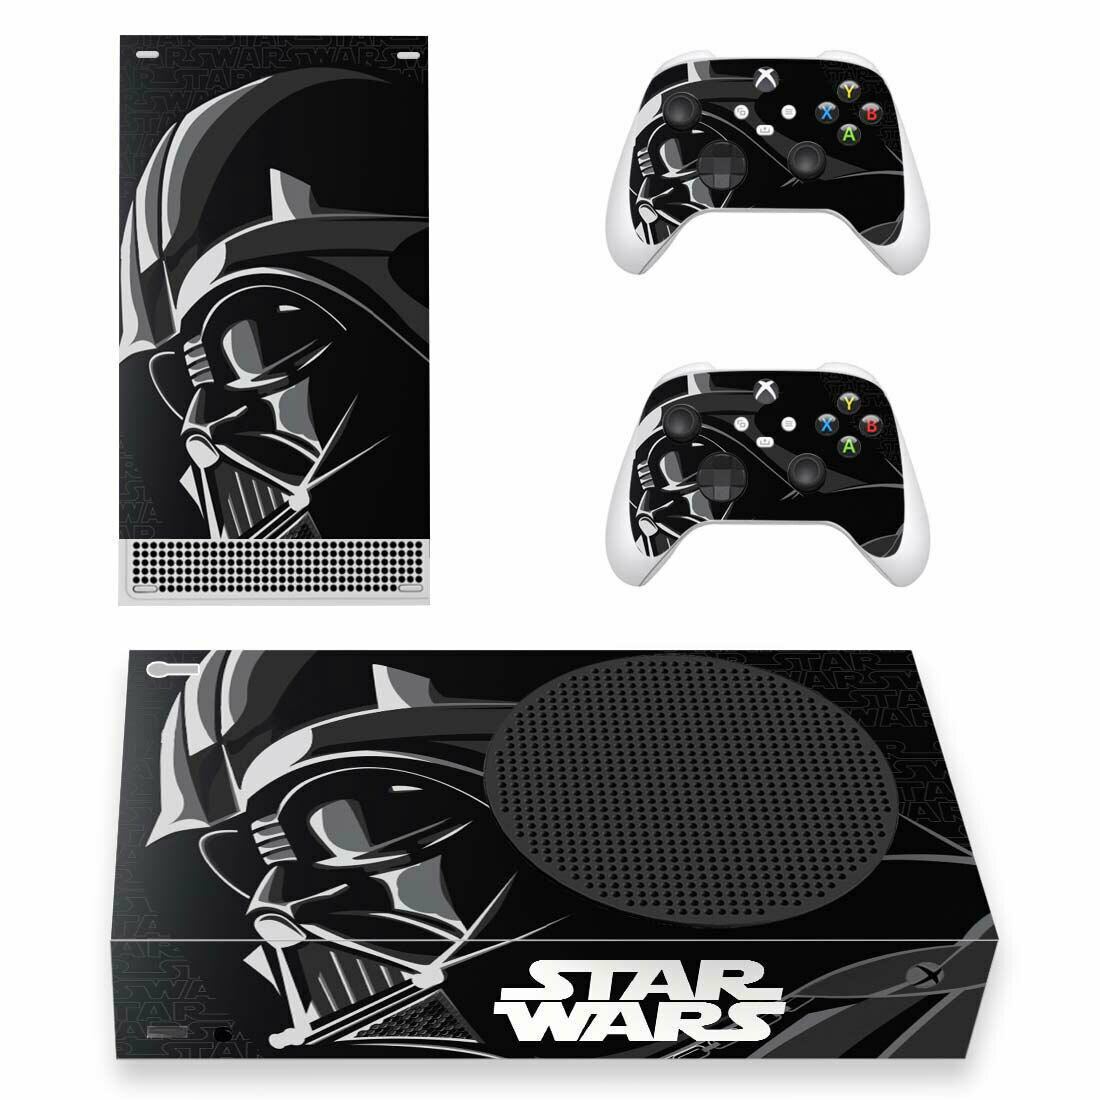 Star Wars Vinyl Skin Sticker Cover for Xbox Series S Console & 2 Controllers